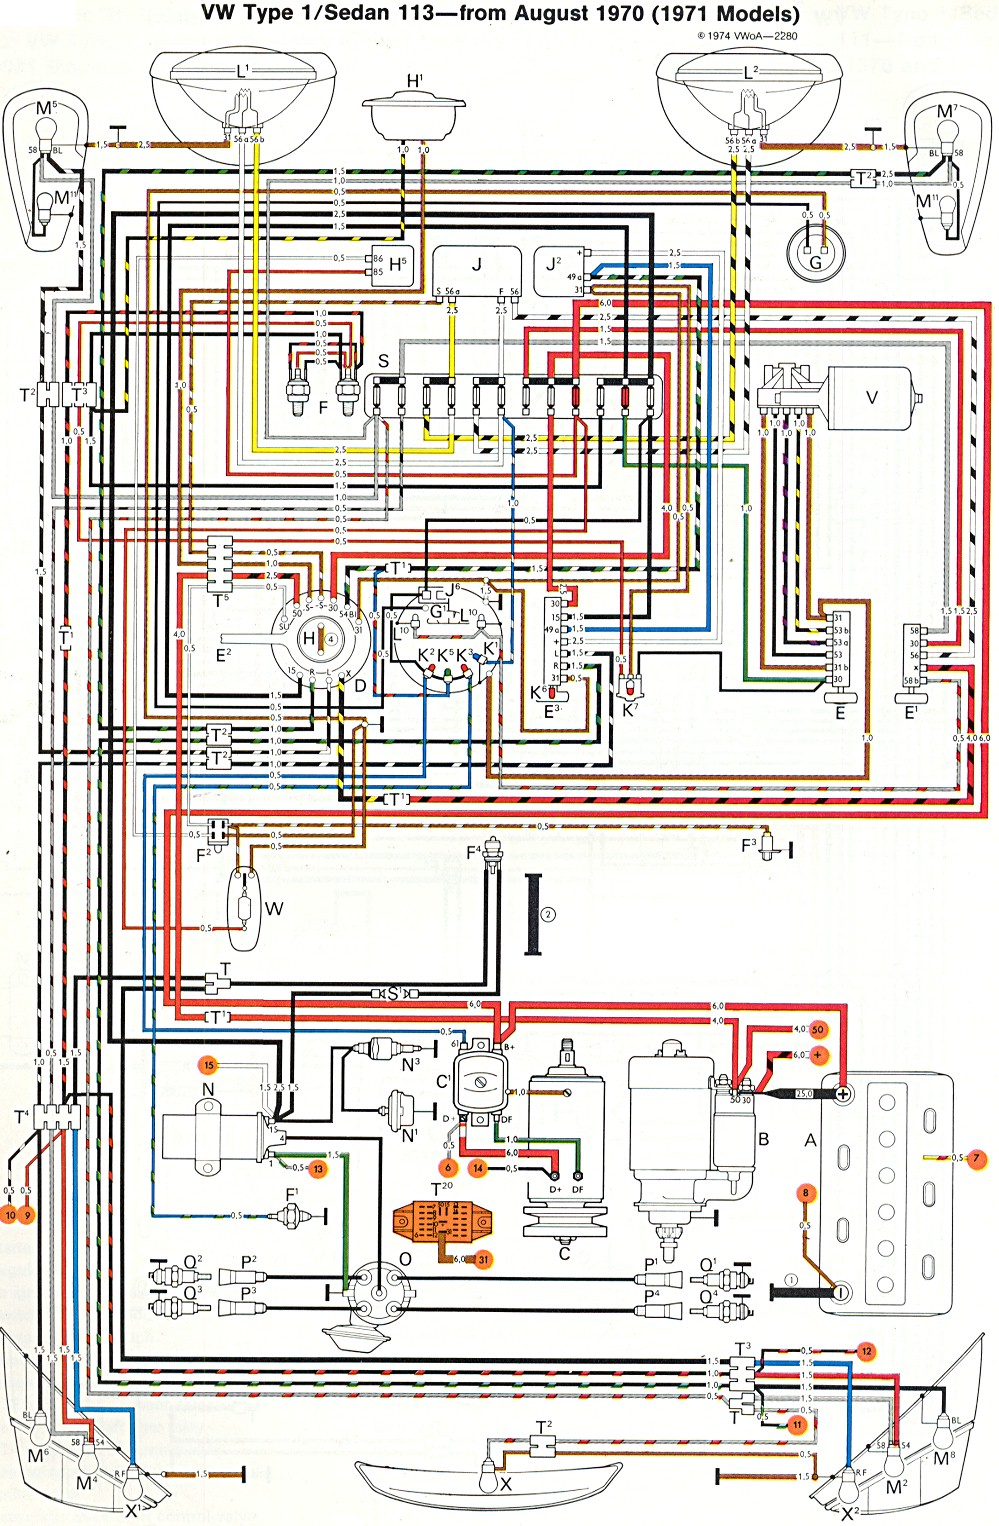 bug_super_71 1971 super beetle wiring diagram thegoldenbug com 1973 vw wiring diagram at mifinder.co